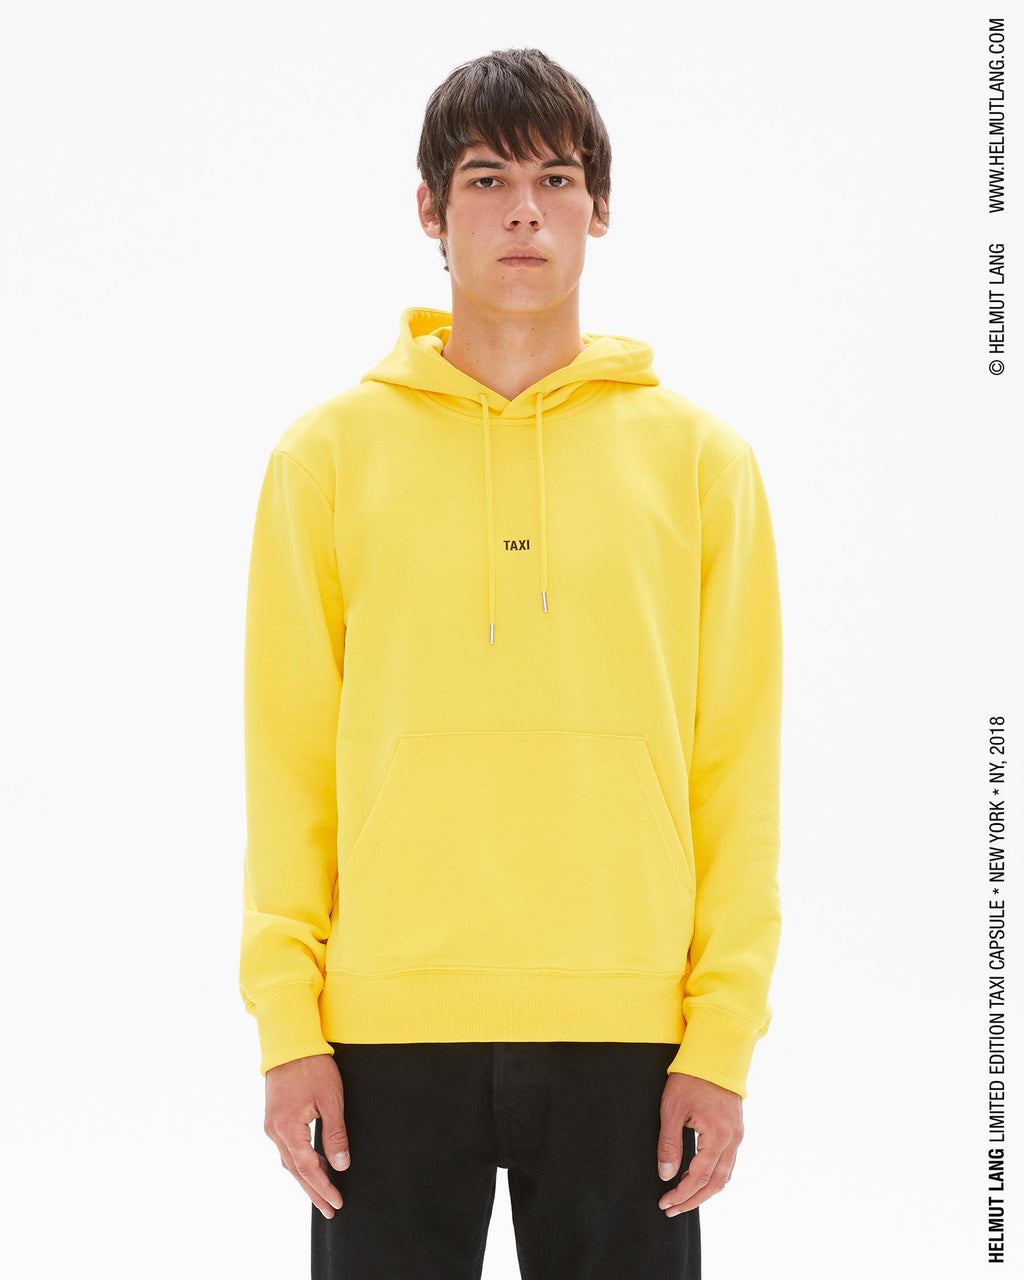 Yellow Taxi Hoodie (New York)